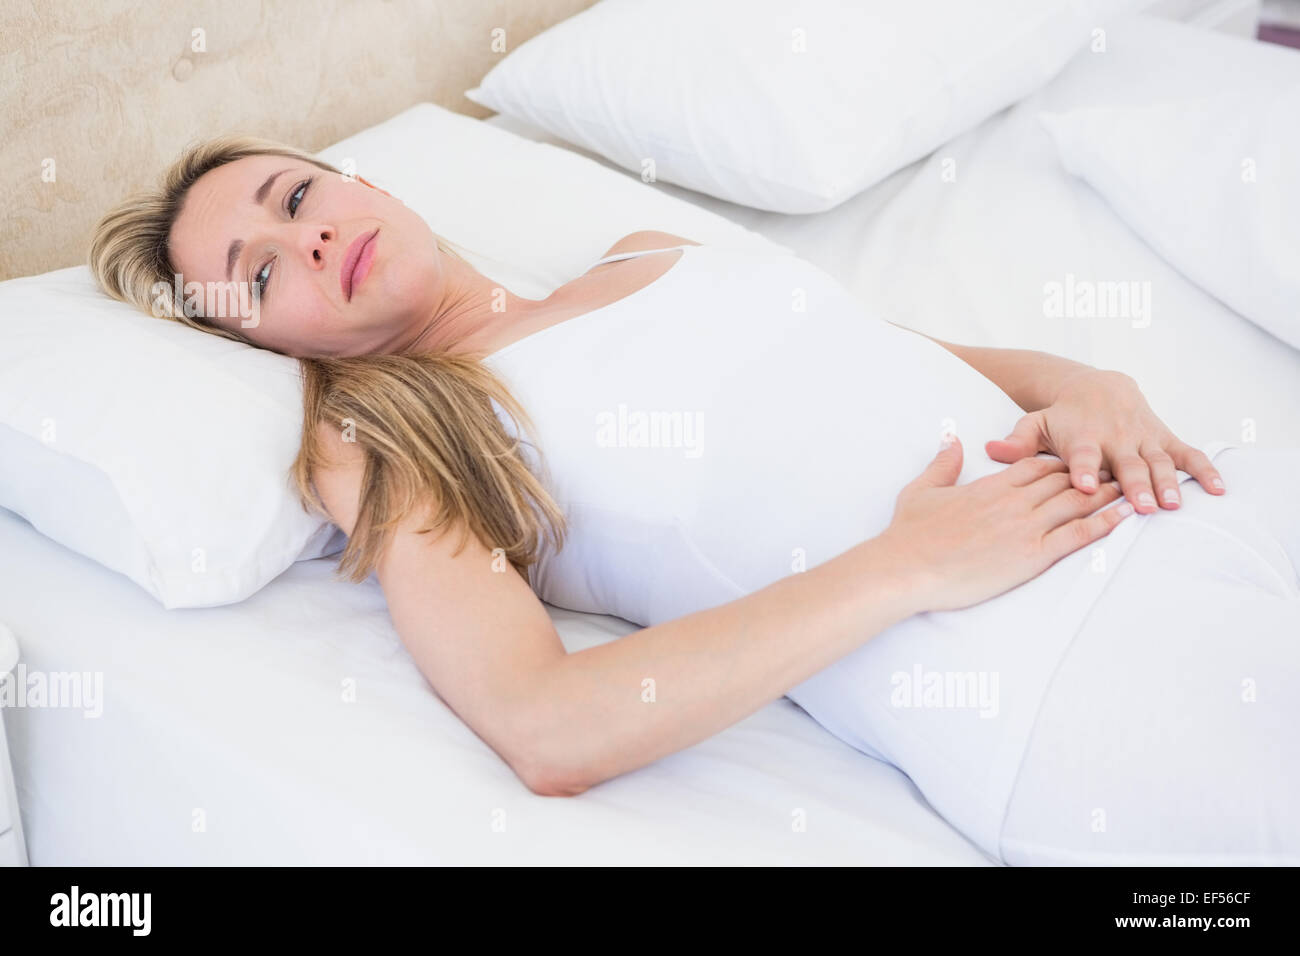 Grimacing woman suffering with stomach pain - Stock Image